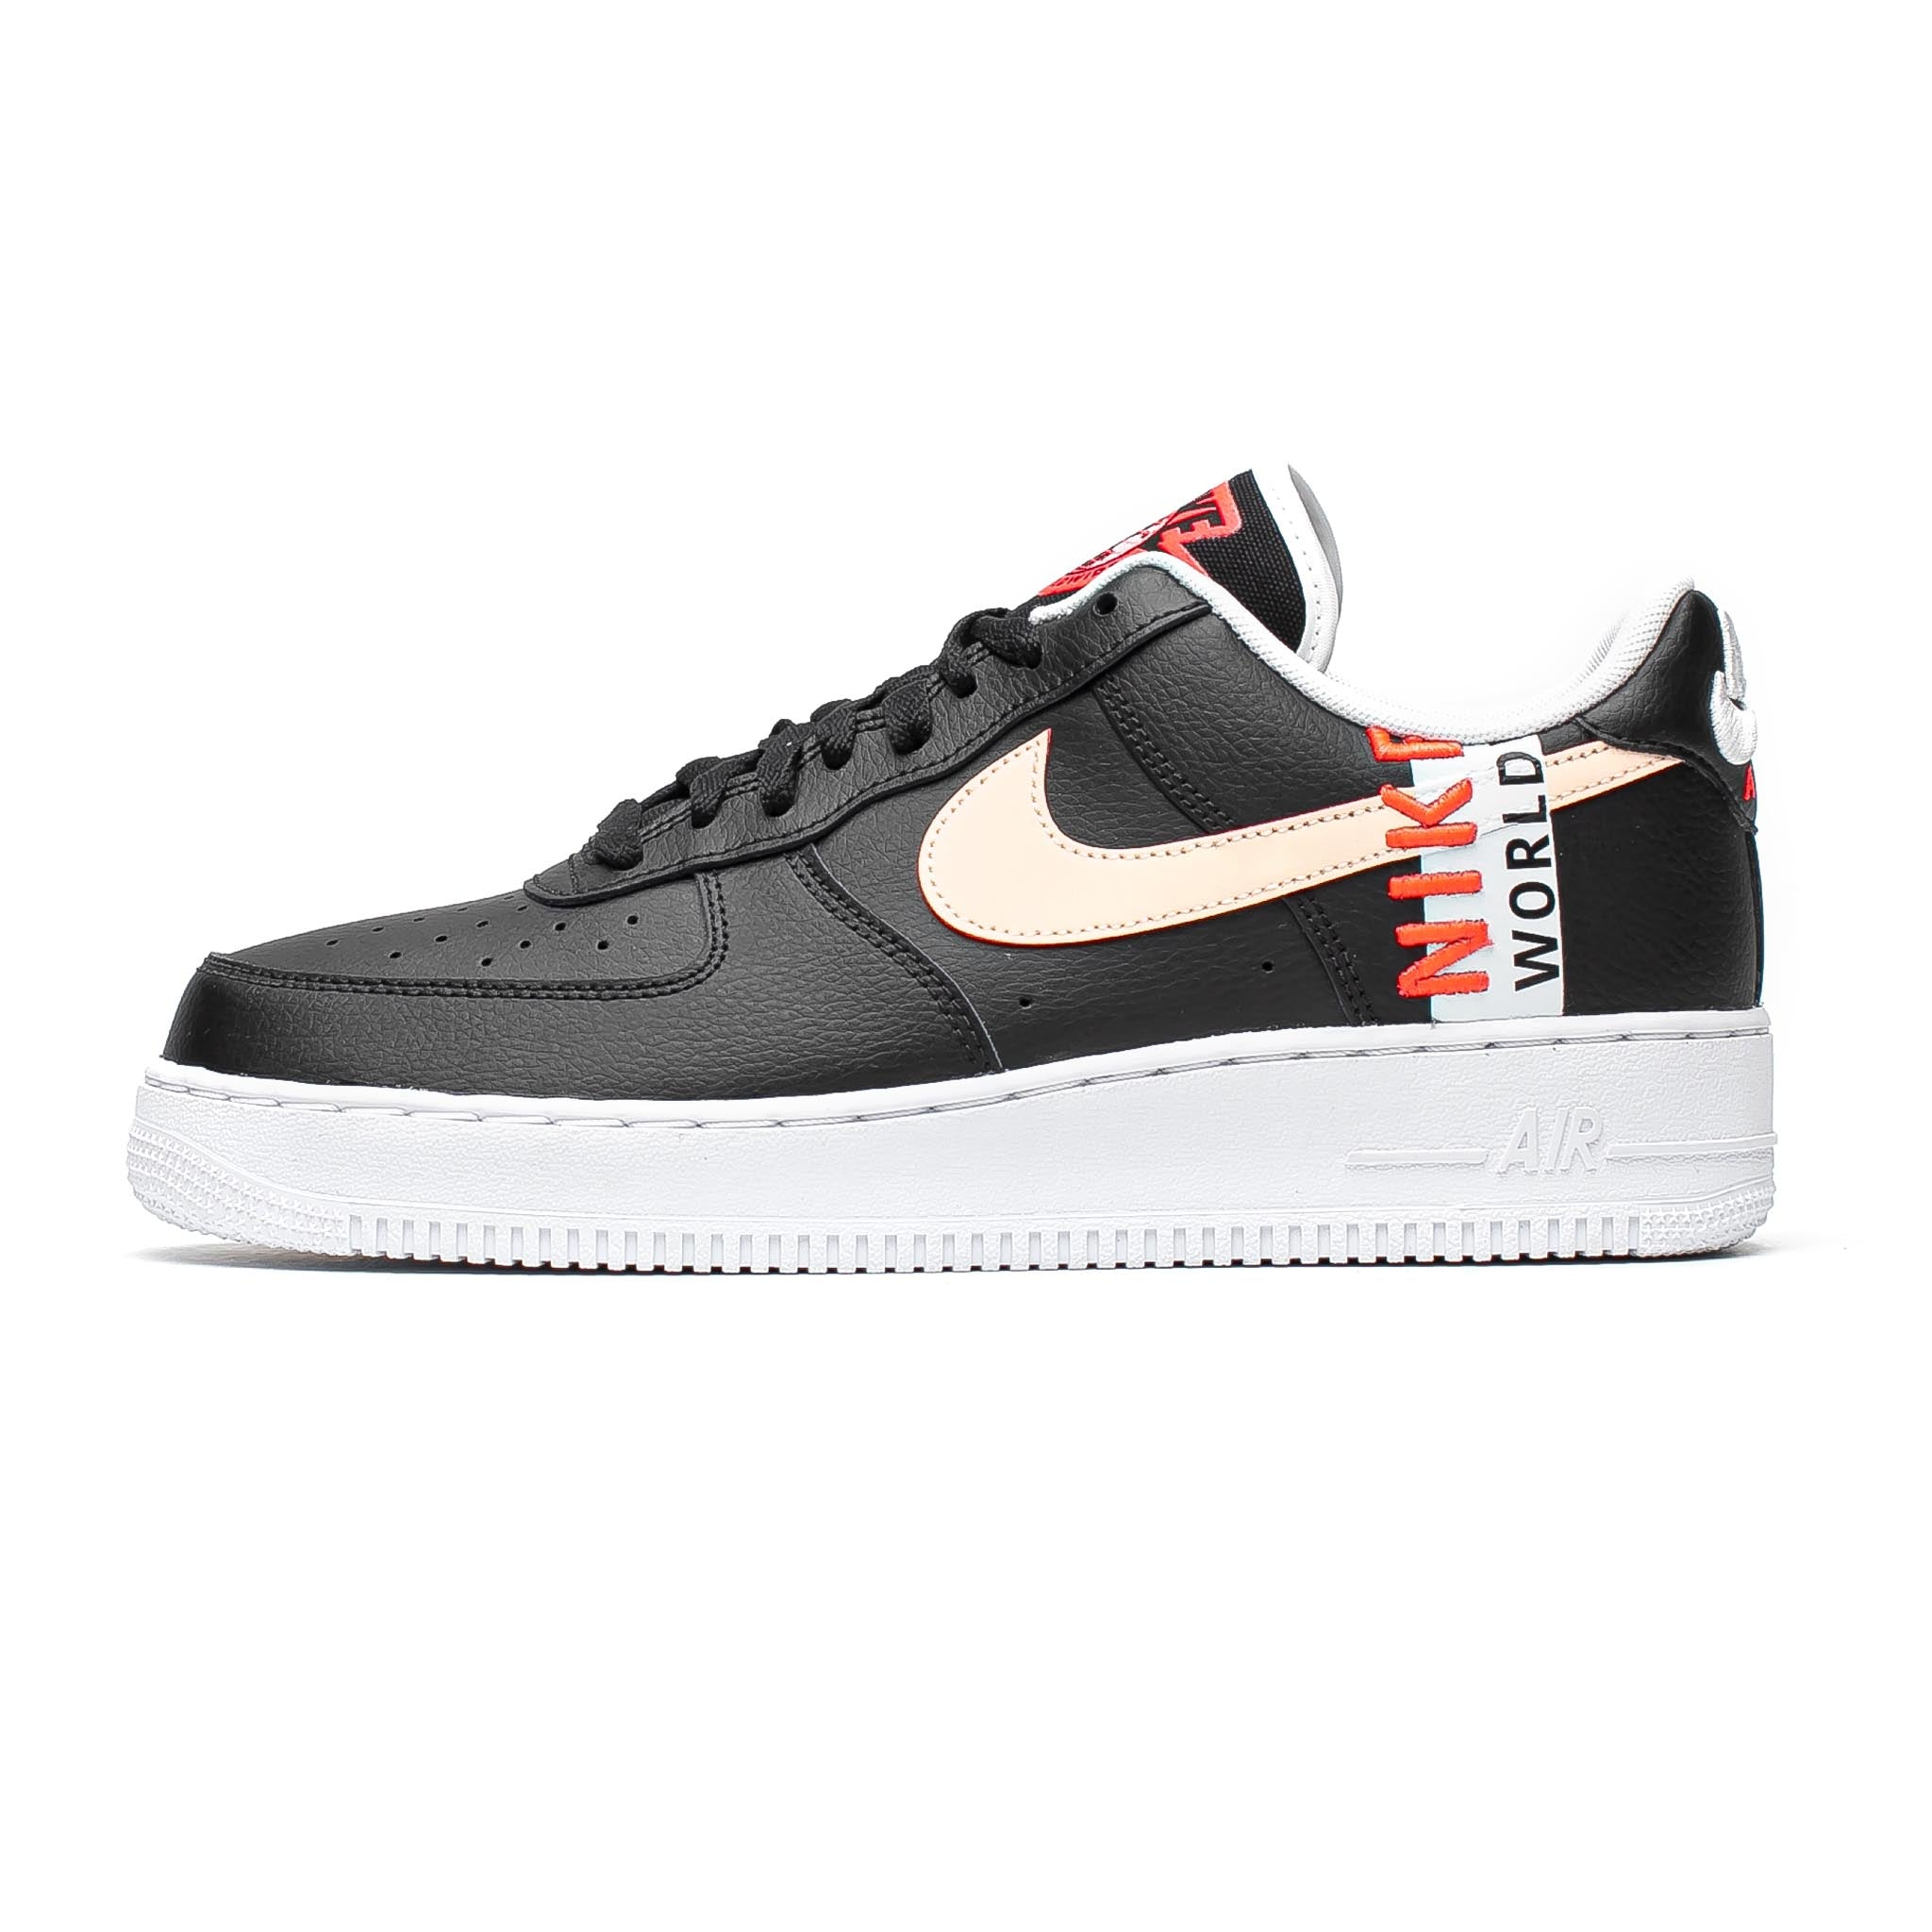 Nike Air Force 1 '07 LV8 'Worldwide' Black